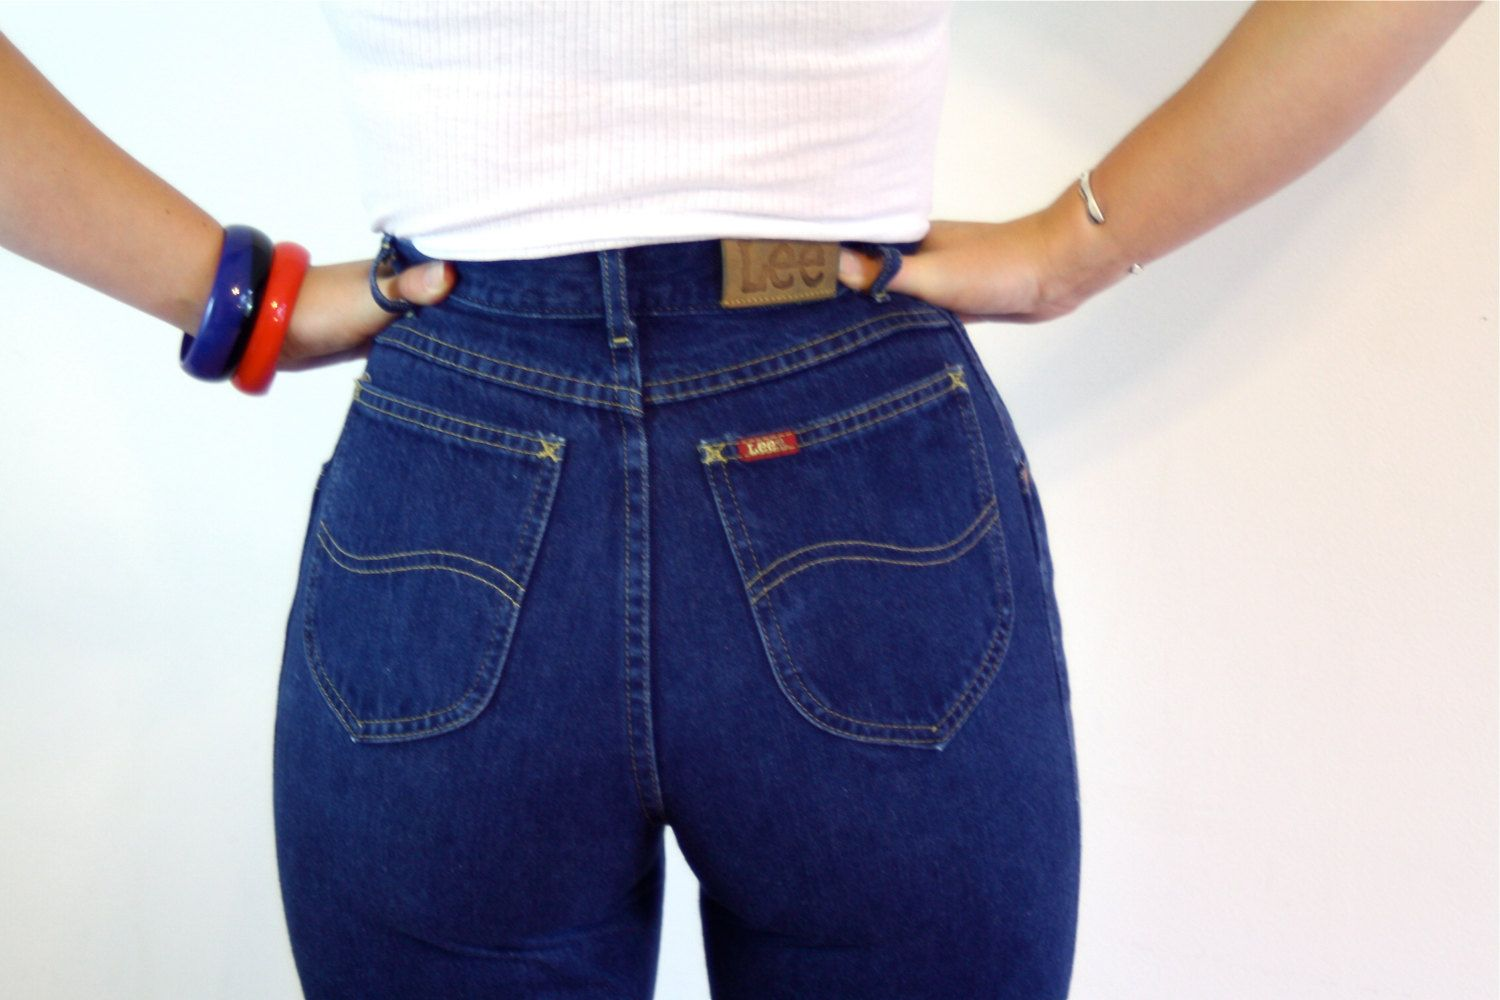 d48f2c8788d07 Vintage 80s LEE Jeans High Waisted Pleated Mom Jeans Super High Waist Tight  Fitted 1980s Dark Denim Blue Jean Pants Lee Riders Size 25 by ...